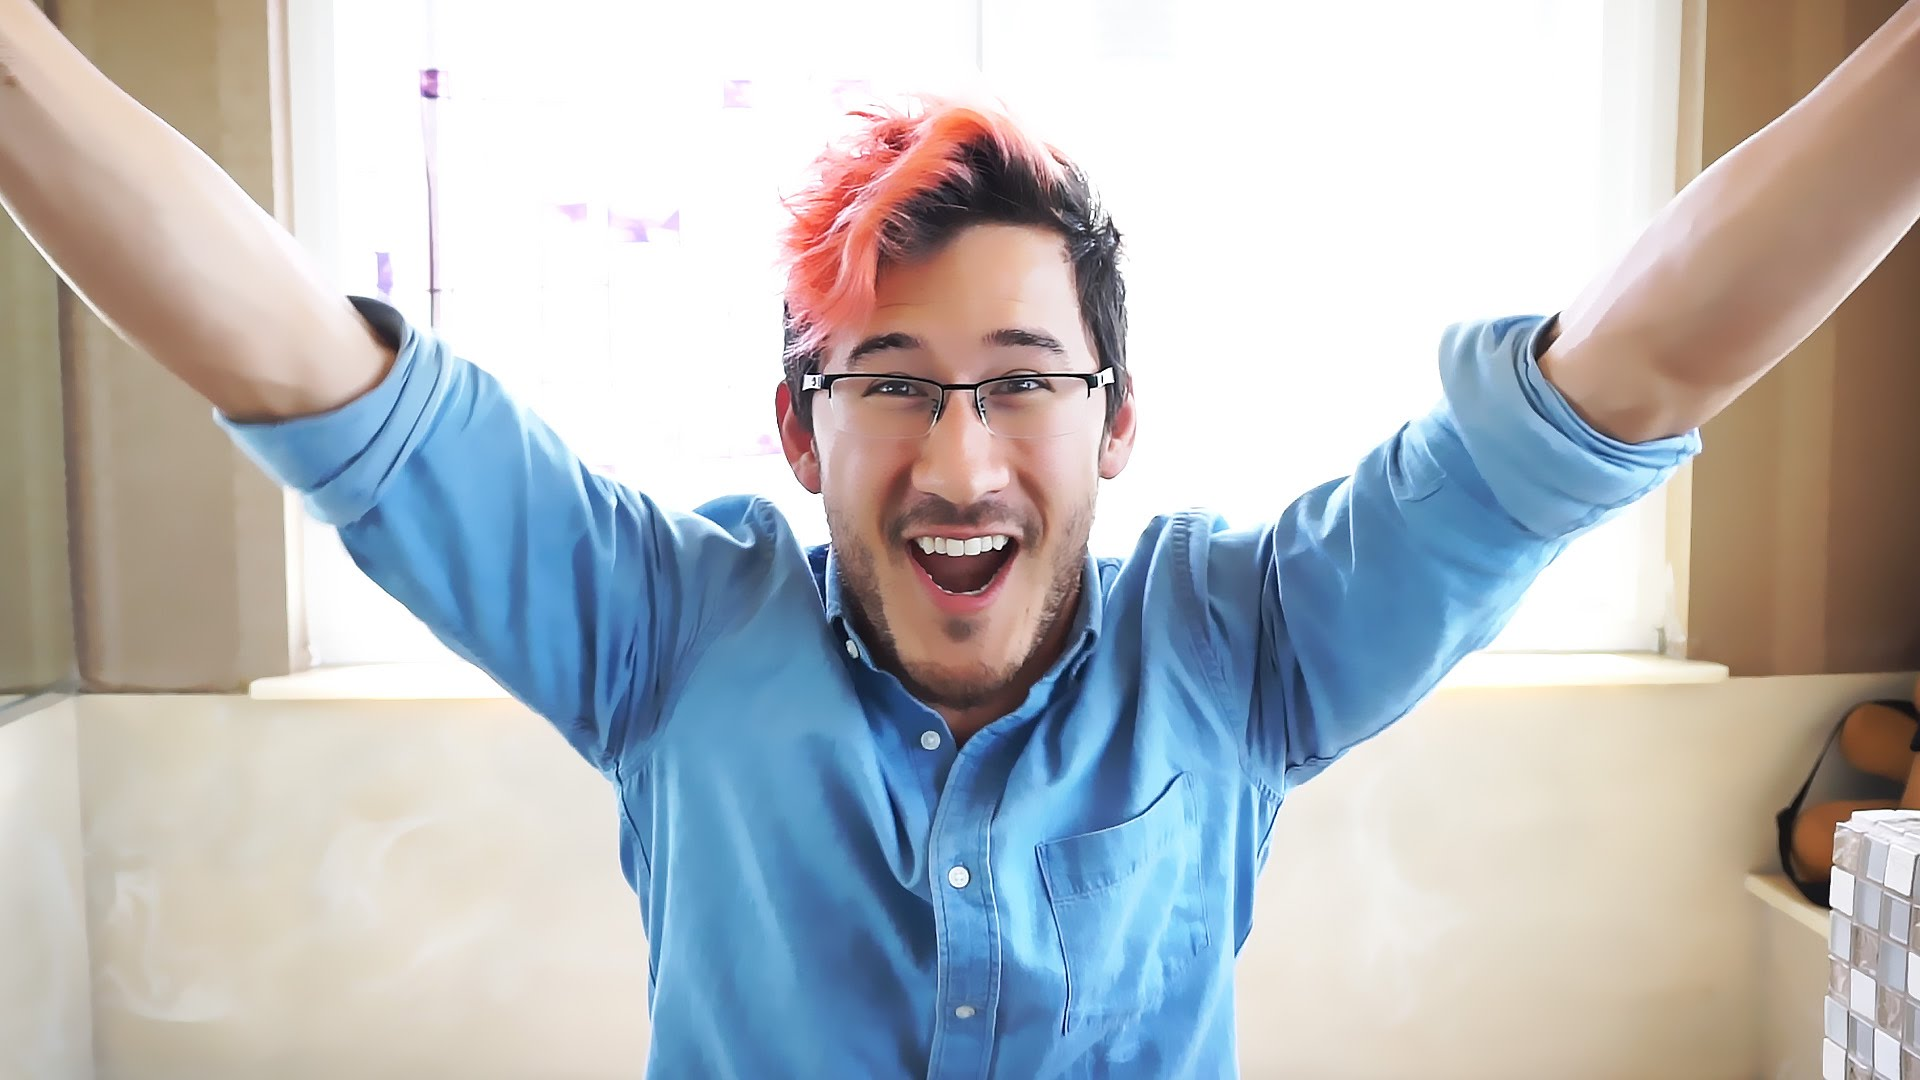 Youtuber markipliers net worth may surprise you budget and the bees imagine having no college degree yet getting rich by commenting on youtube videos on the web well its not a fantasy for some people sciox Choice Image